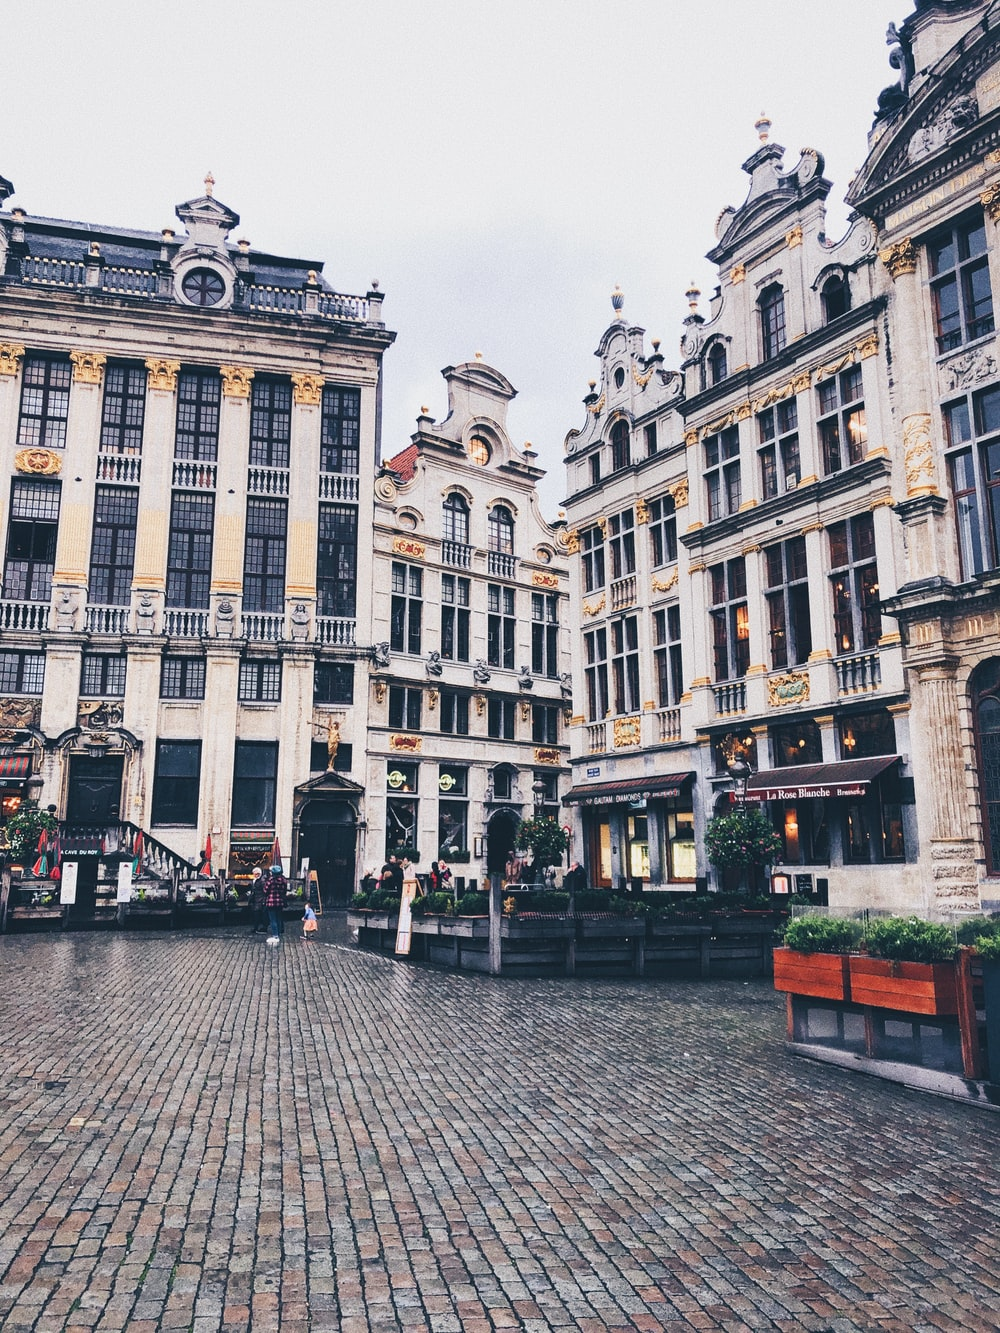 Grand Place of Brussels during daytime